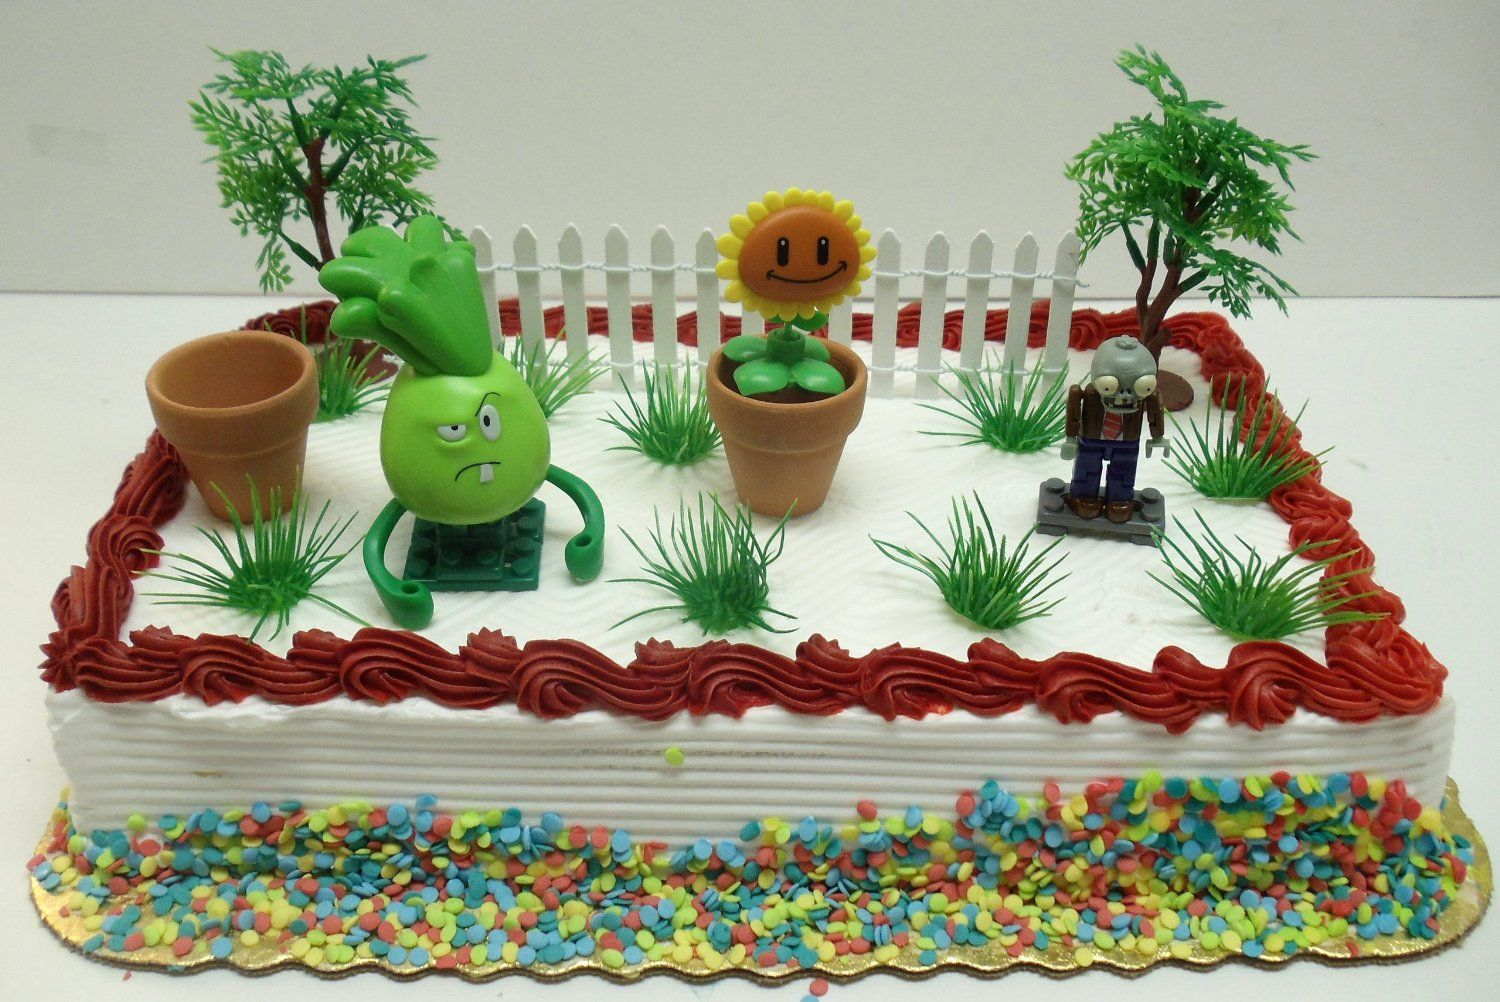 Amazoncom Plants vs Zombies Birthday Cake Topper Set Featuring 3